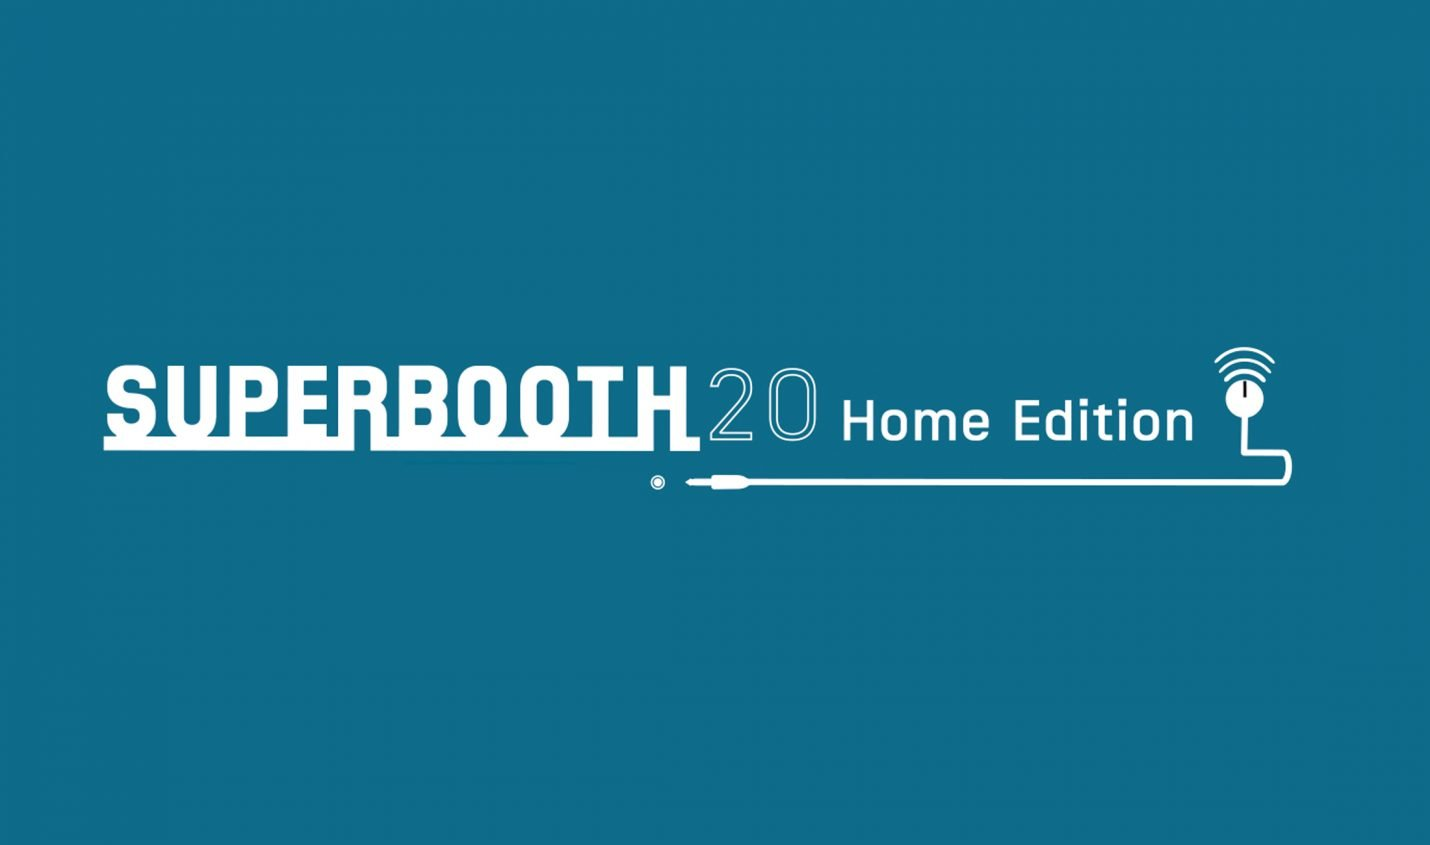 Highlights der Superbooth 20 Home Edition